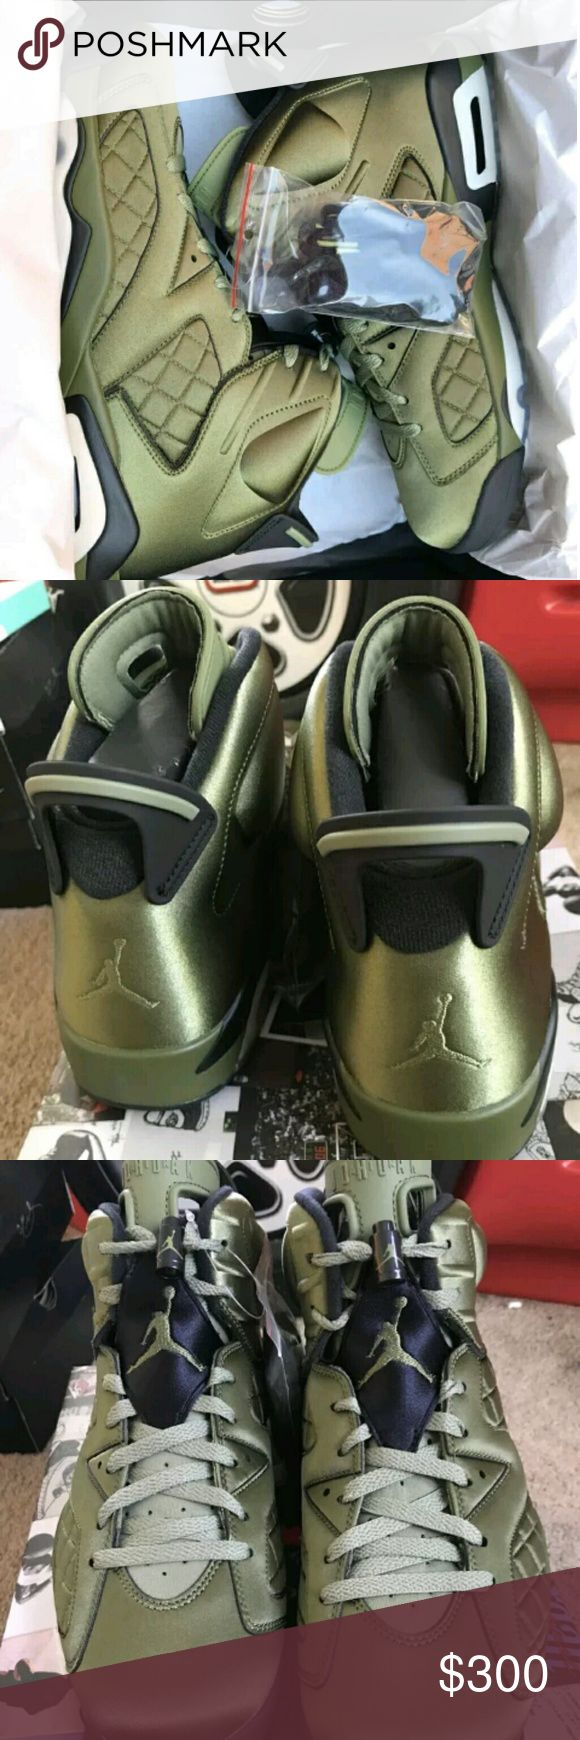 Air Jordan Retro 6 Pinnacle Promo Jacket Olive Pal Deadstock And Brand New w/ Box. Price is highly negotiable if you buy today and Payment is not done thru Po$hmark. Texxt me ONLY when your READY TO PURCHASE 7 7 0 5 8 0 4 8 7 8 Jordan Shoes Athletic Shoes